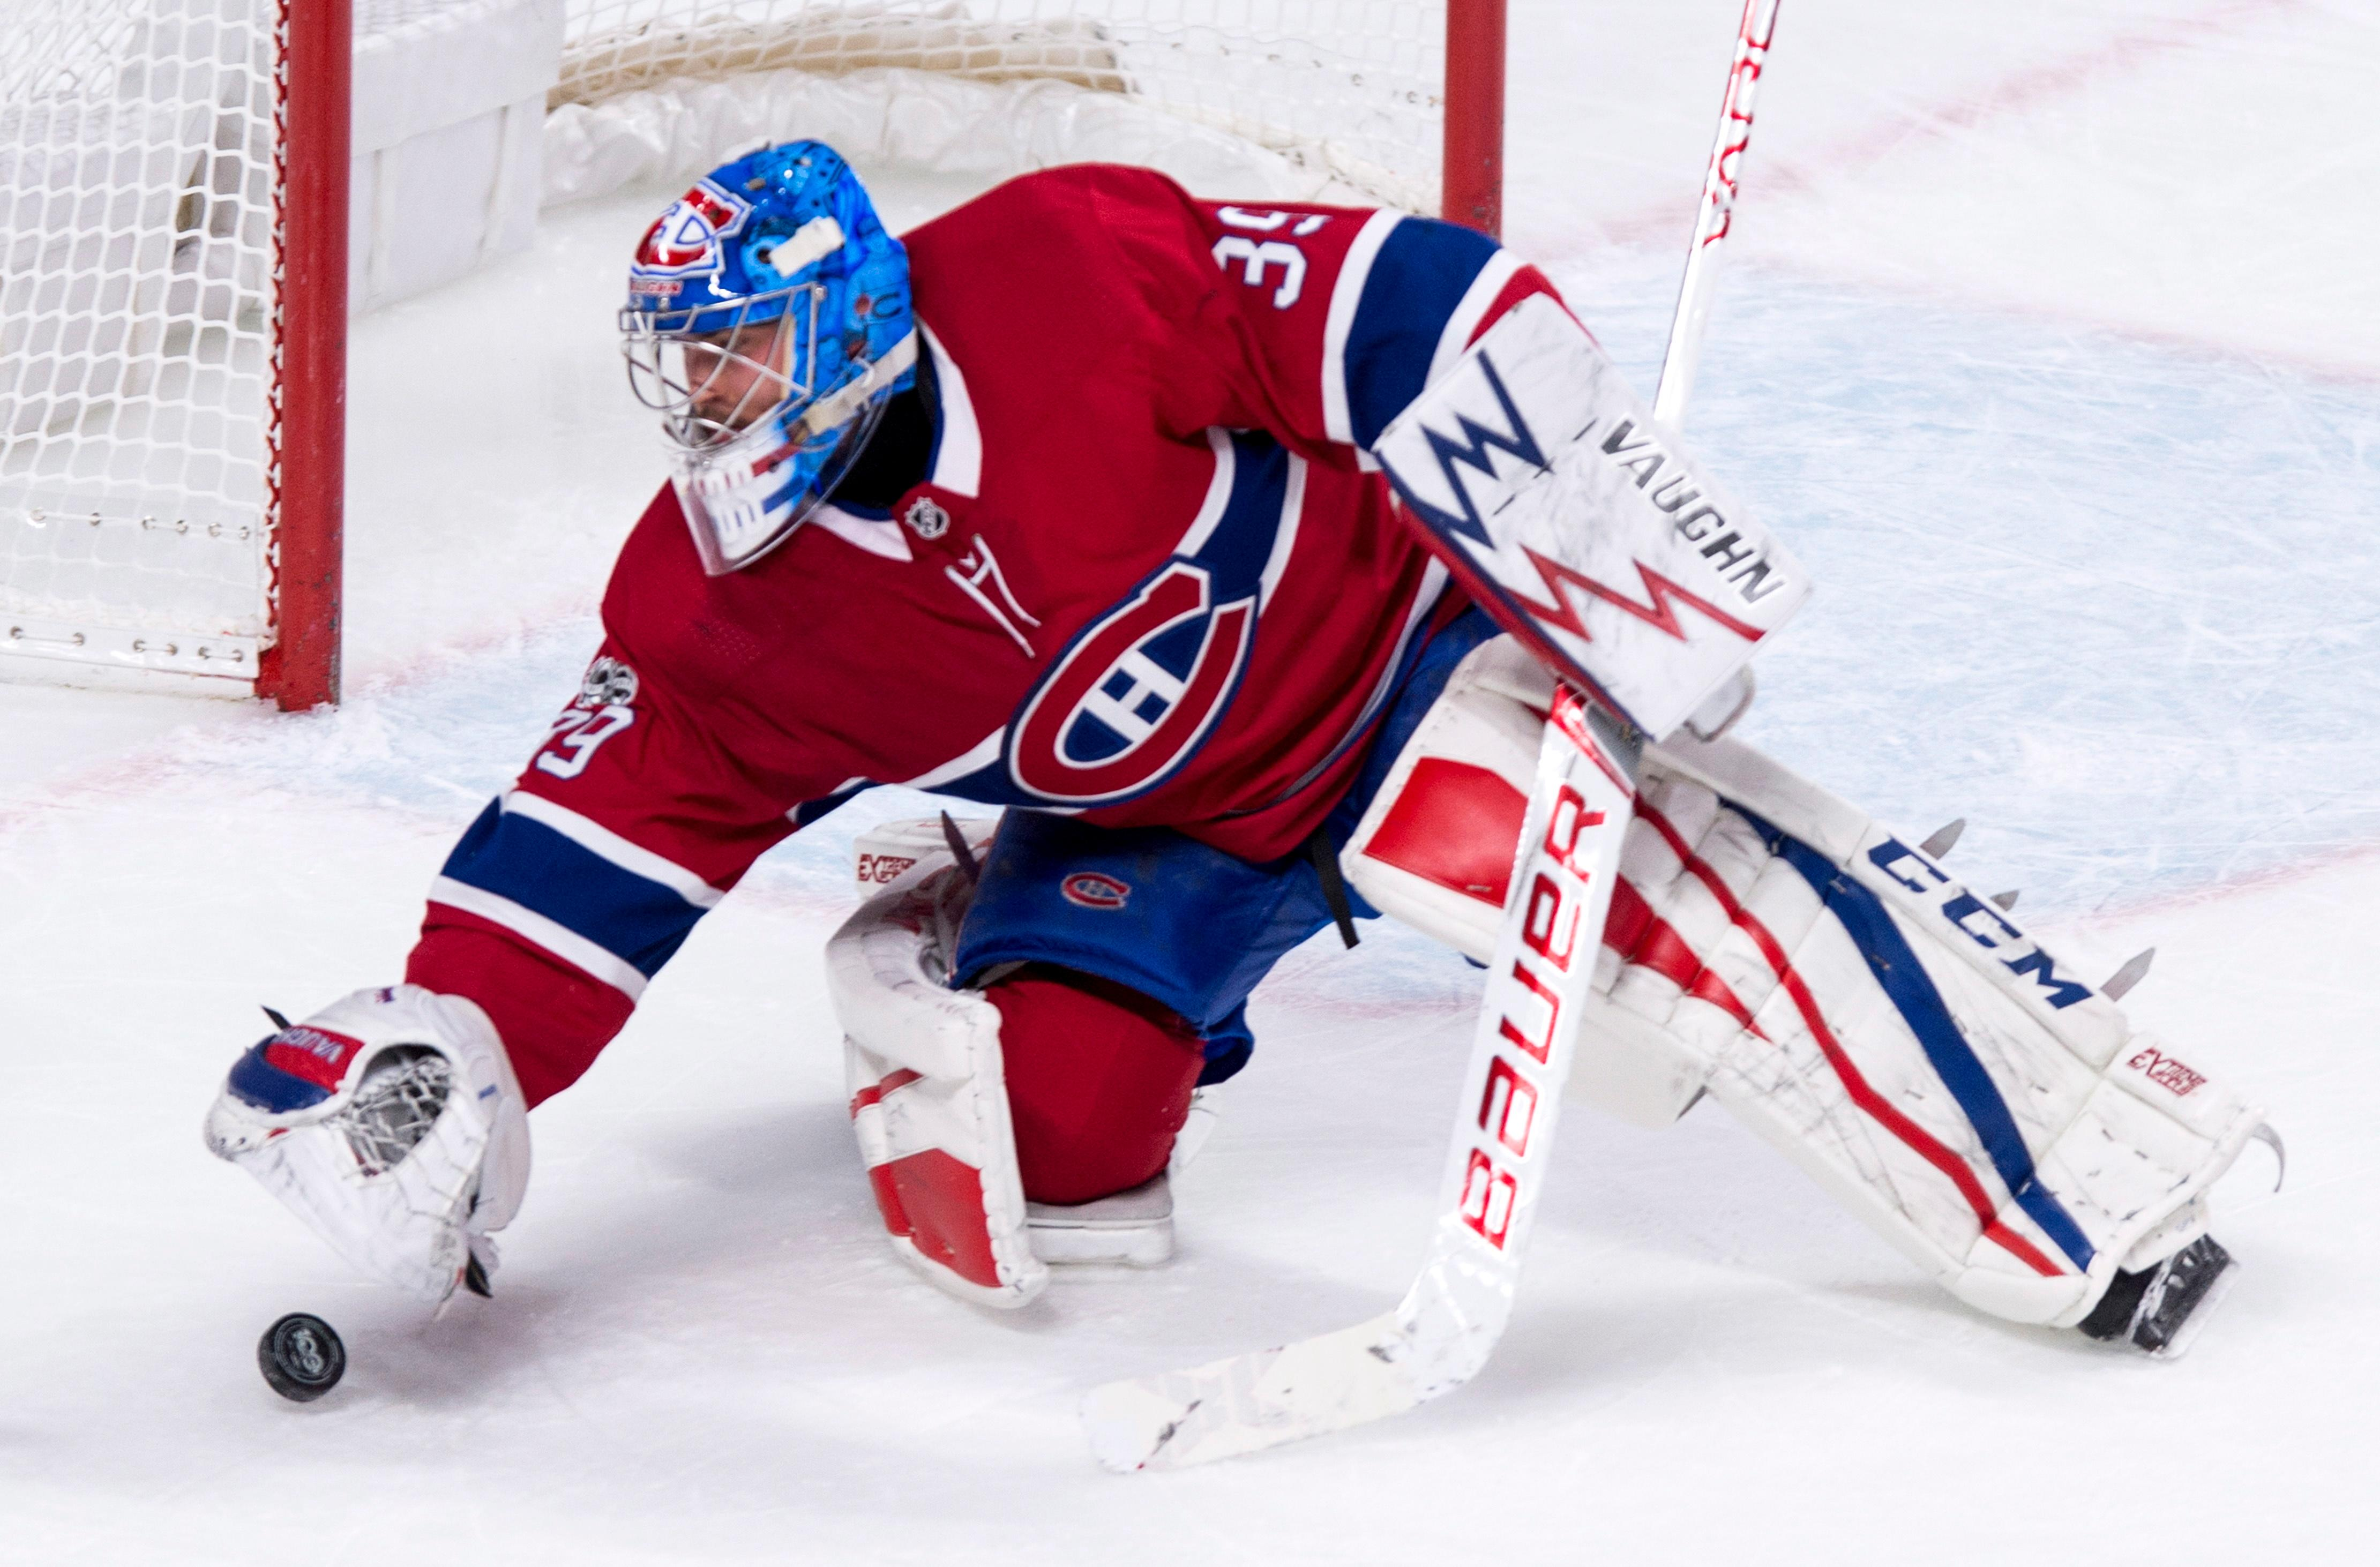 Montreal Canadiens goalie Charlie Lindgren stops a rolling puck during the second period of an NHL hockey game against the Columbus Blue Jackets on Tuesday, Nov. 14, 2017, in Montreal. (Paul Chiasson/The Canadian Press via AP)